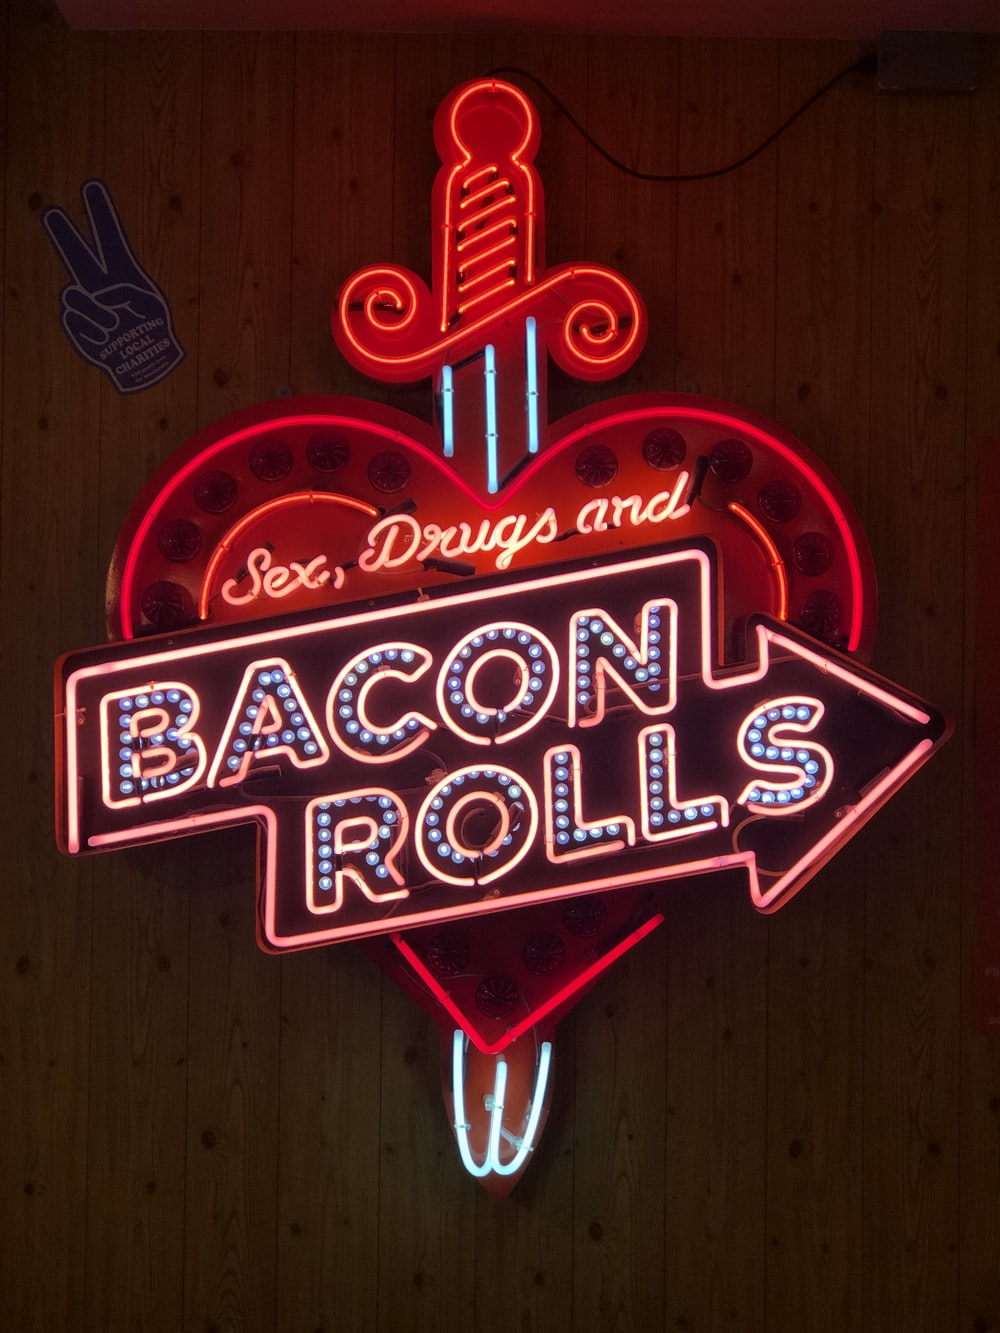 turned on Bacon Rolls neon signage on wall